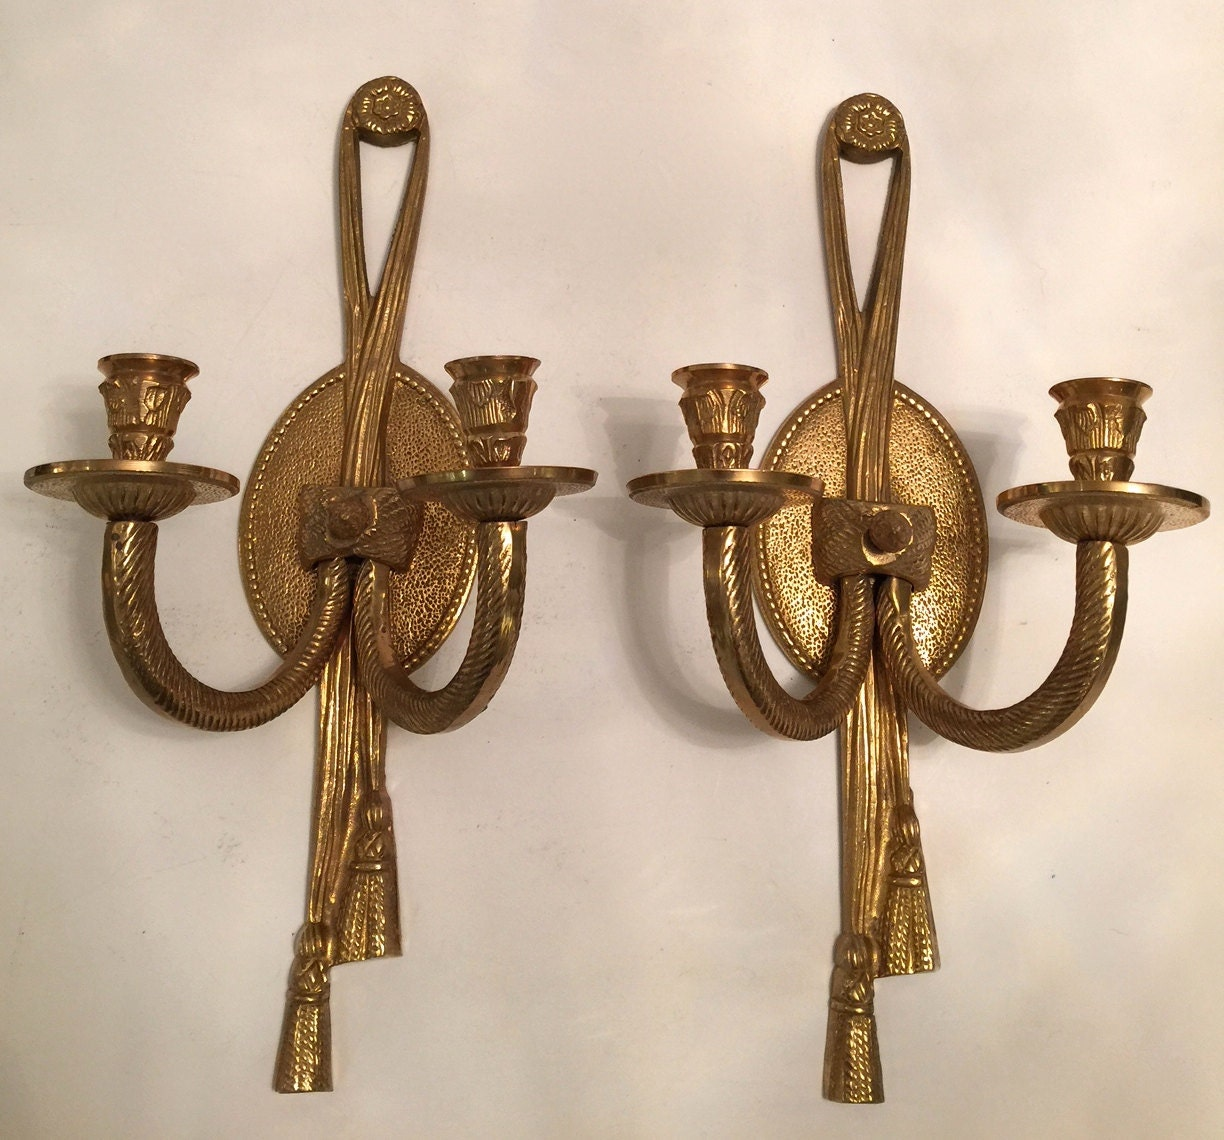 Vintage Heavy Brass Wall Candle Holders Sconces Pair Of Brass